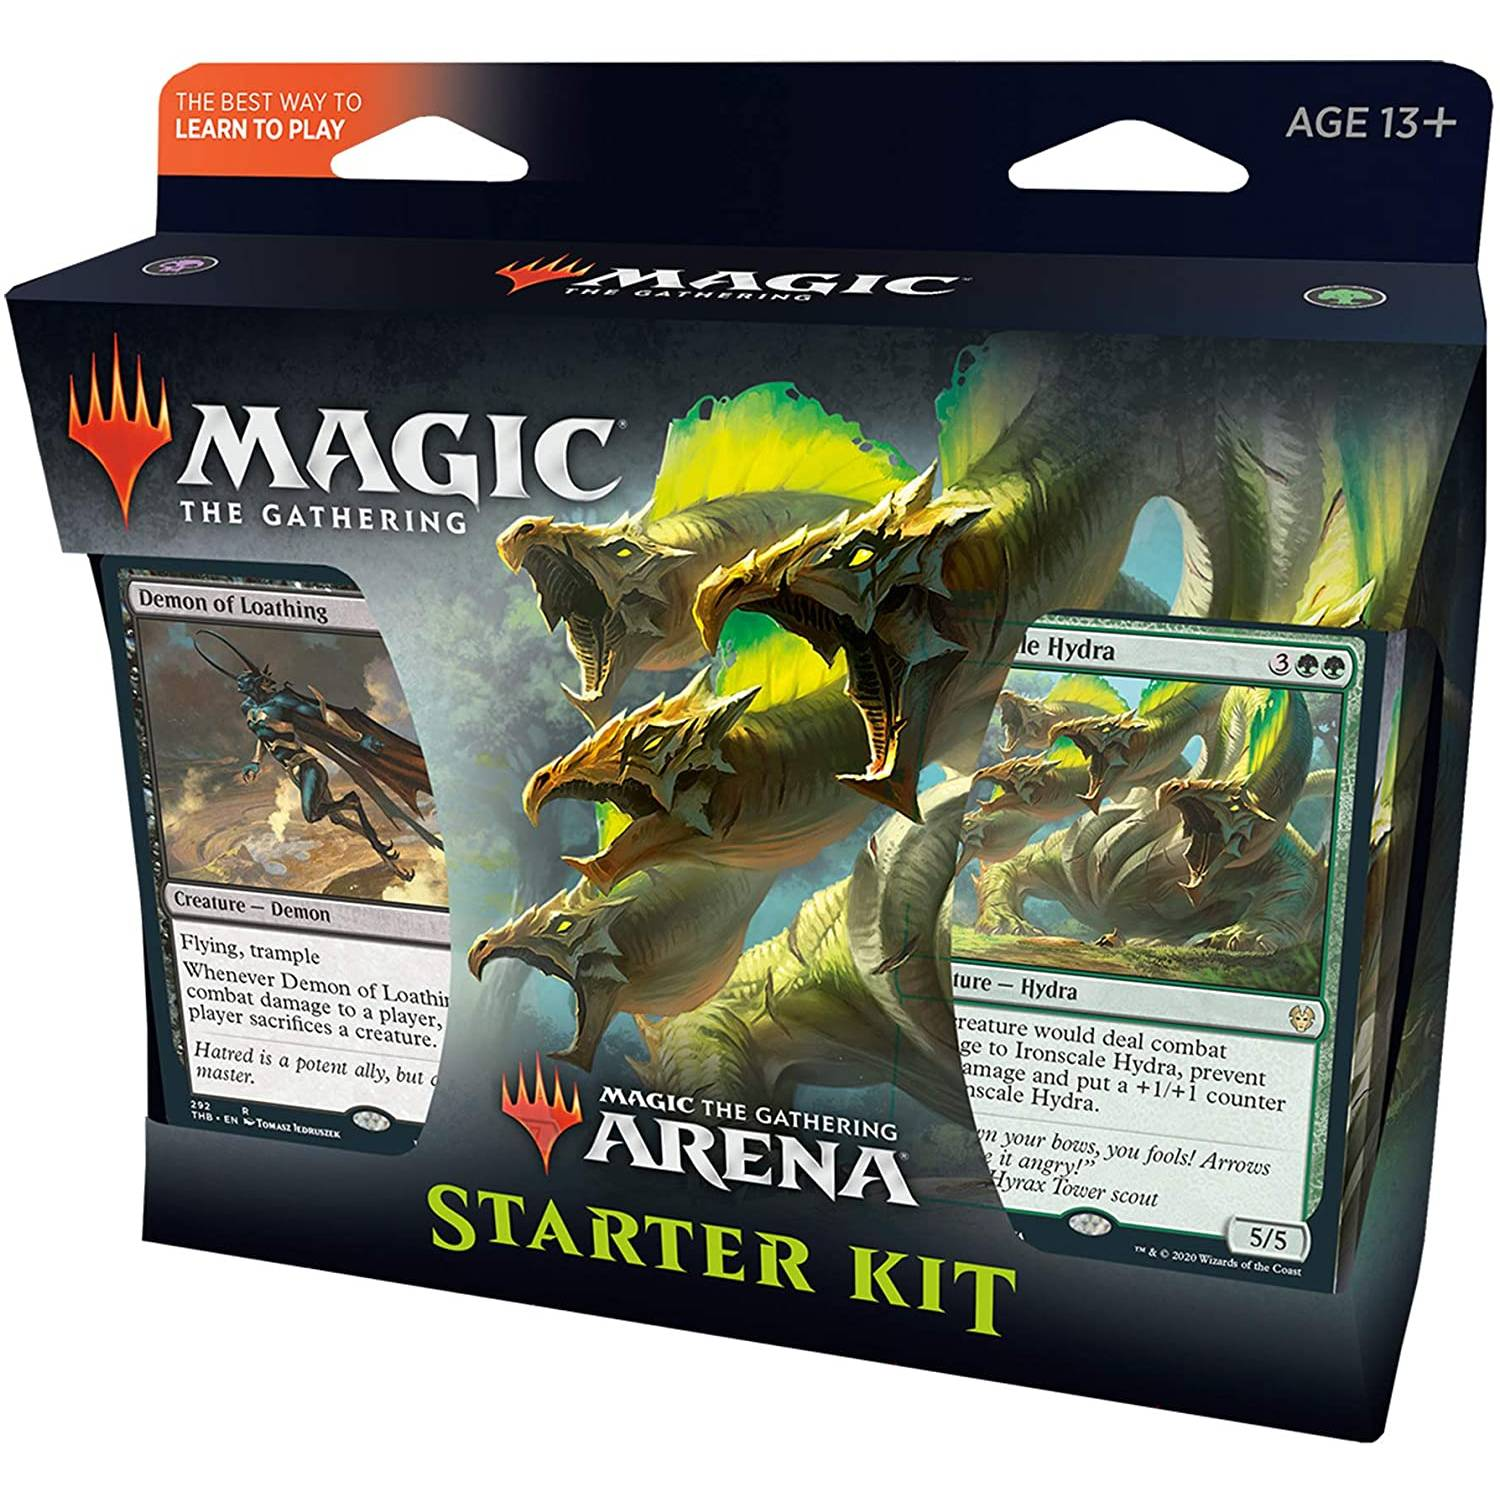 Zestaw kart TCG Magic: The Gathering: Arena Starter Kit